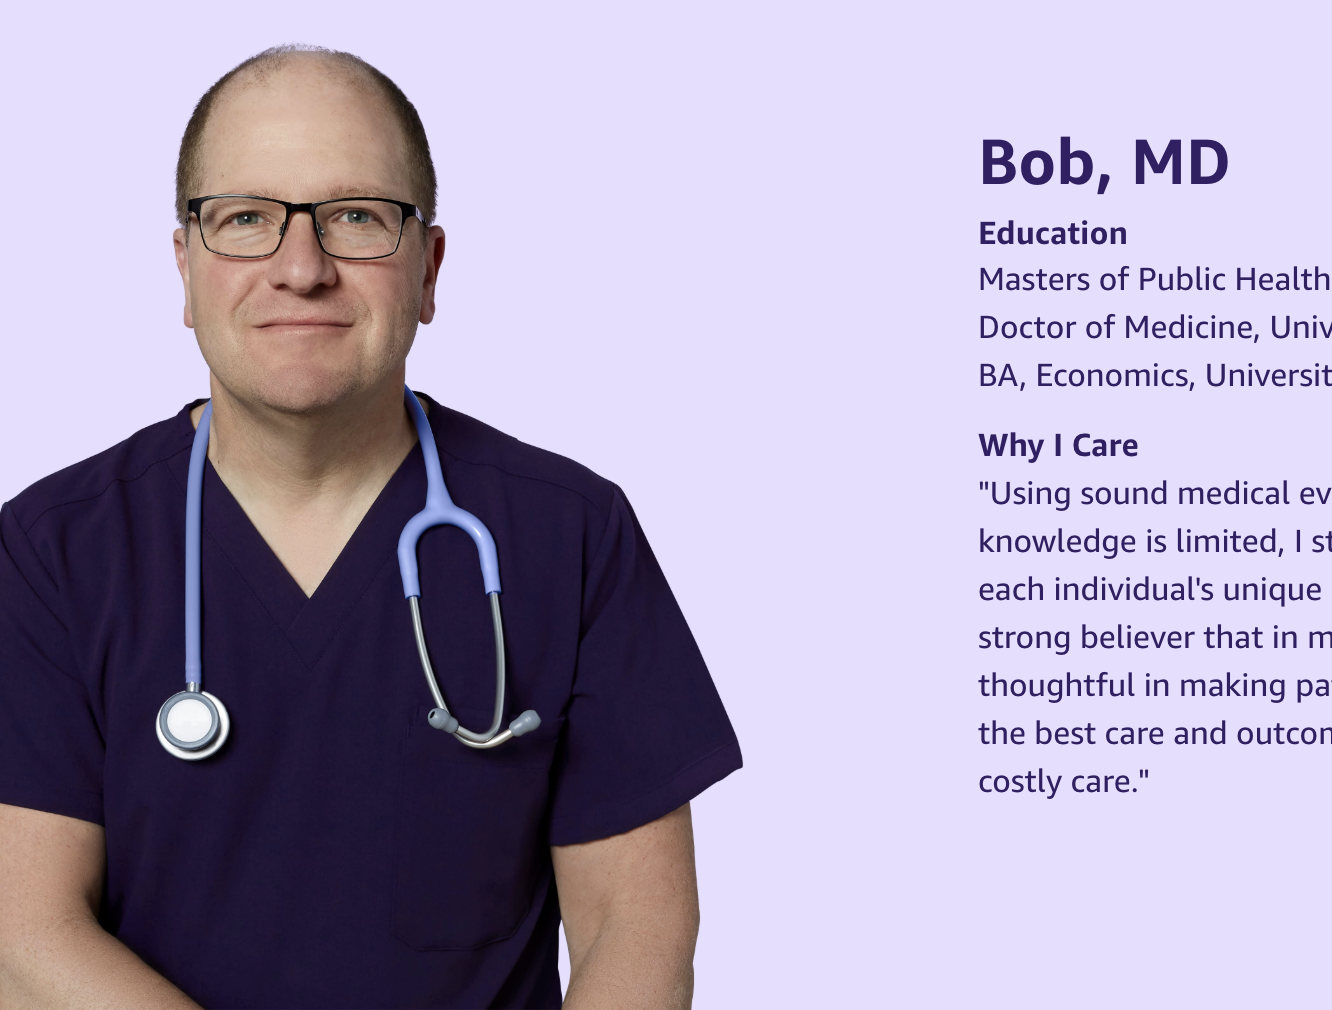 Bob, MD from Amazon.care